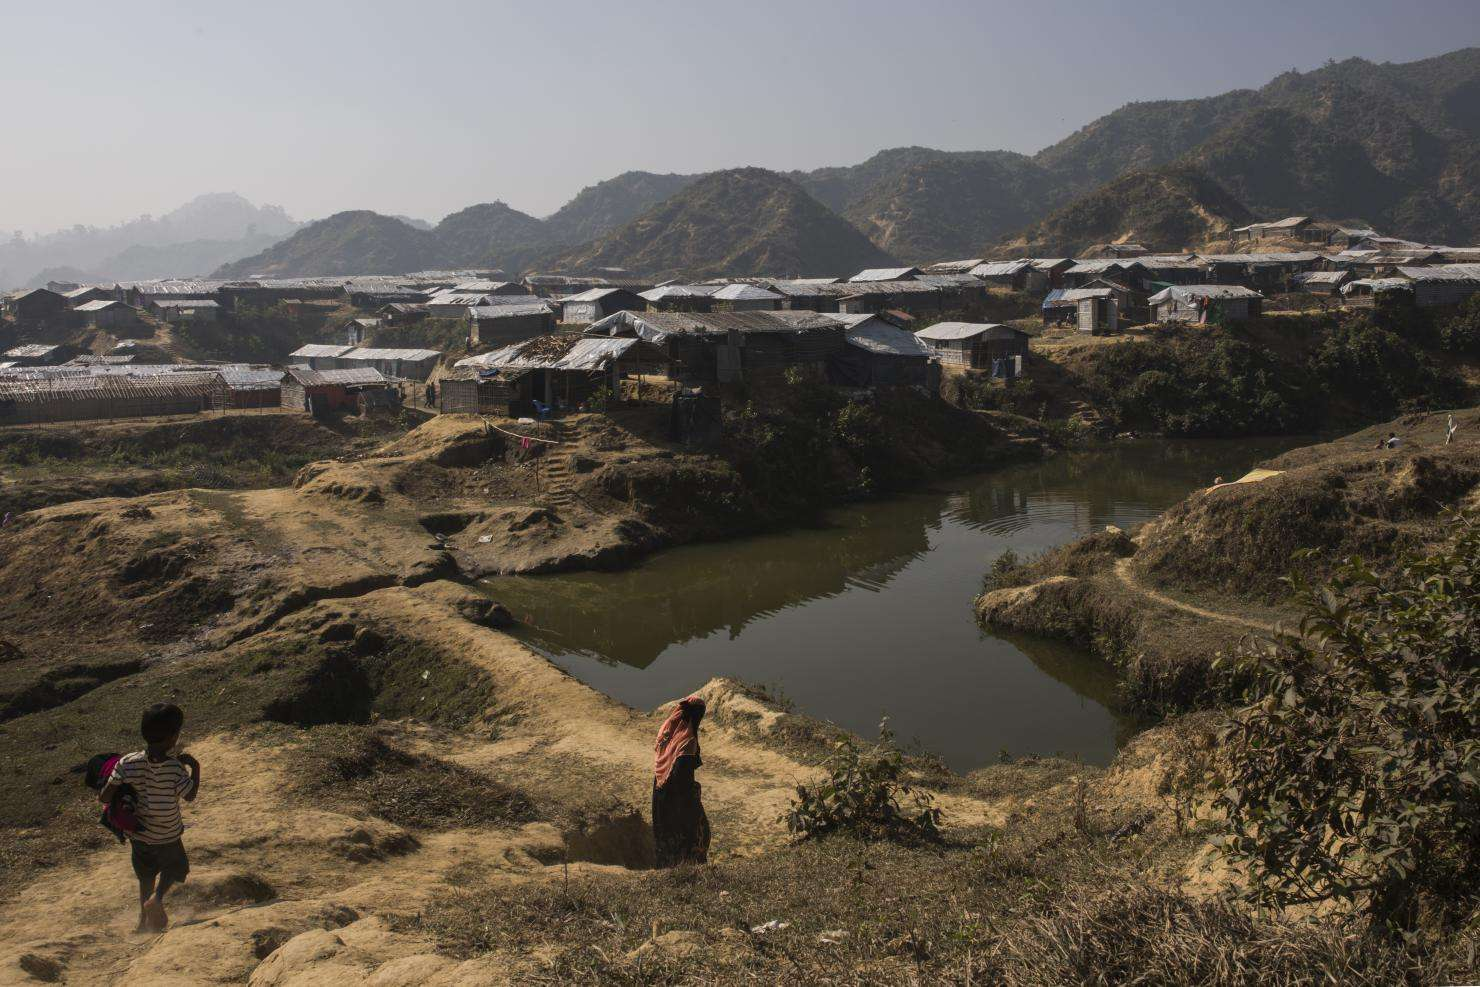 A view of the refugee settlement expansion near Nayapara camp, Bangladesh.